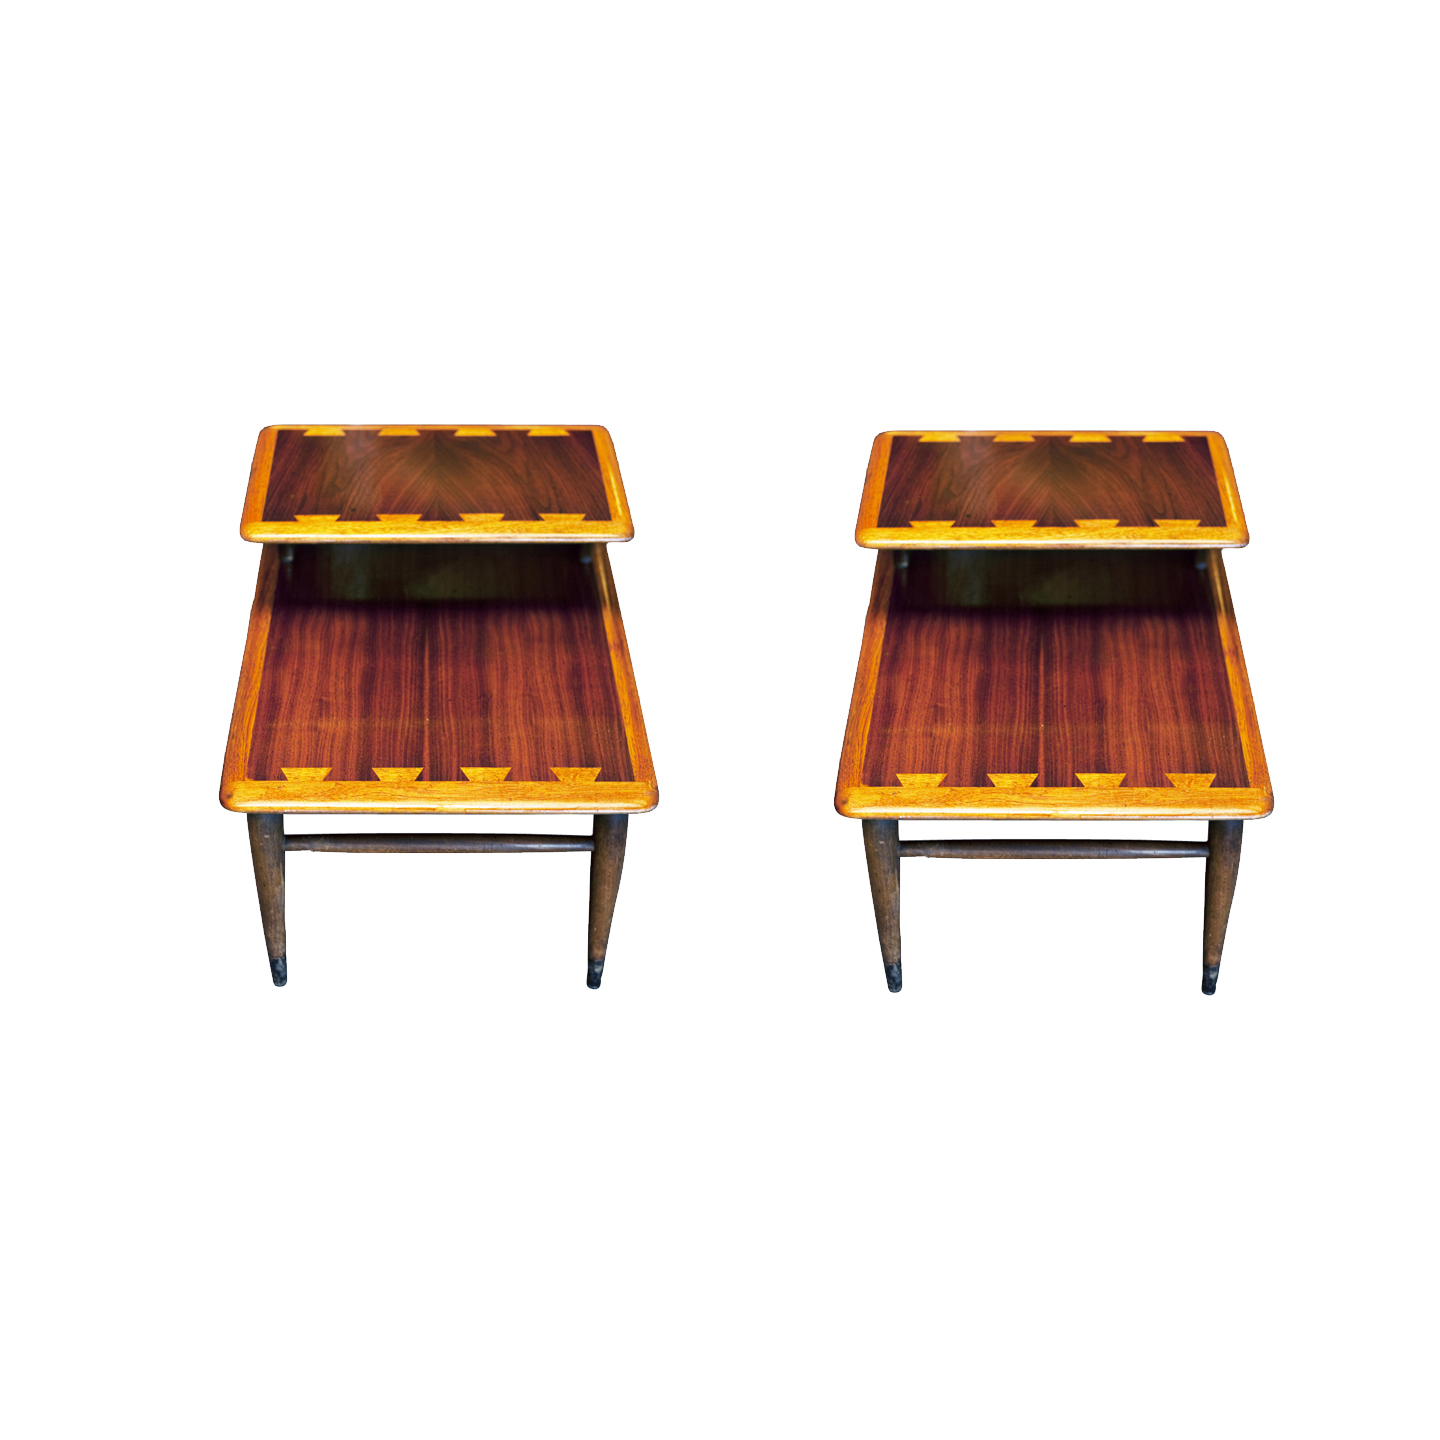 1950s Mid Century End Table By Lane Furniture: (2) Vintage Mid Century 2 Tiered Lane Acclaim Side Tables